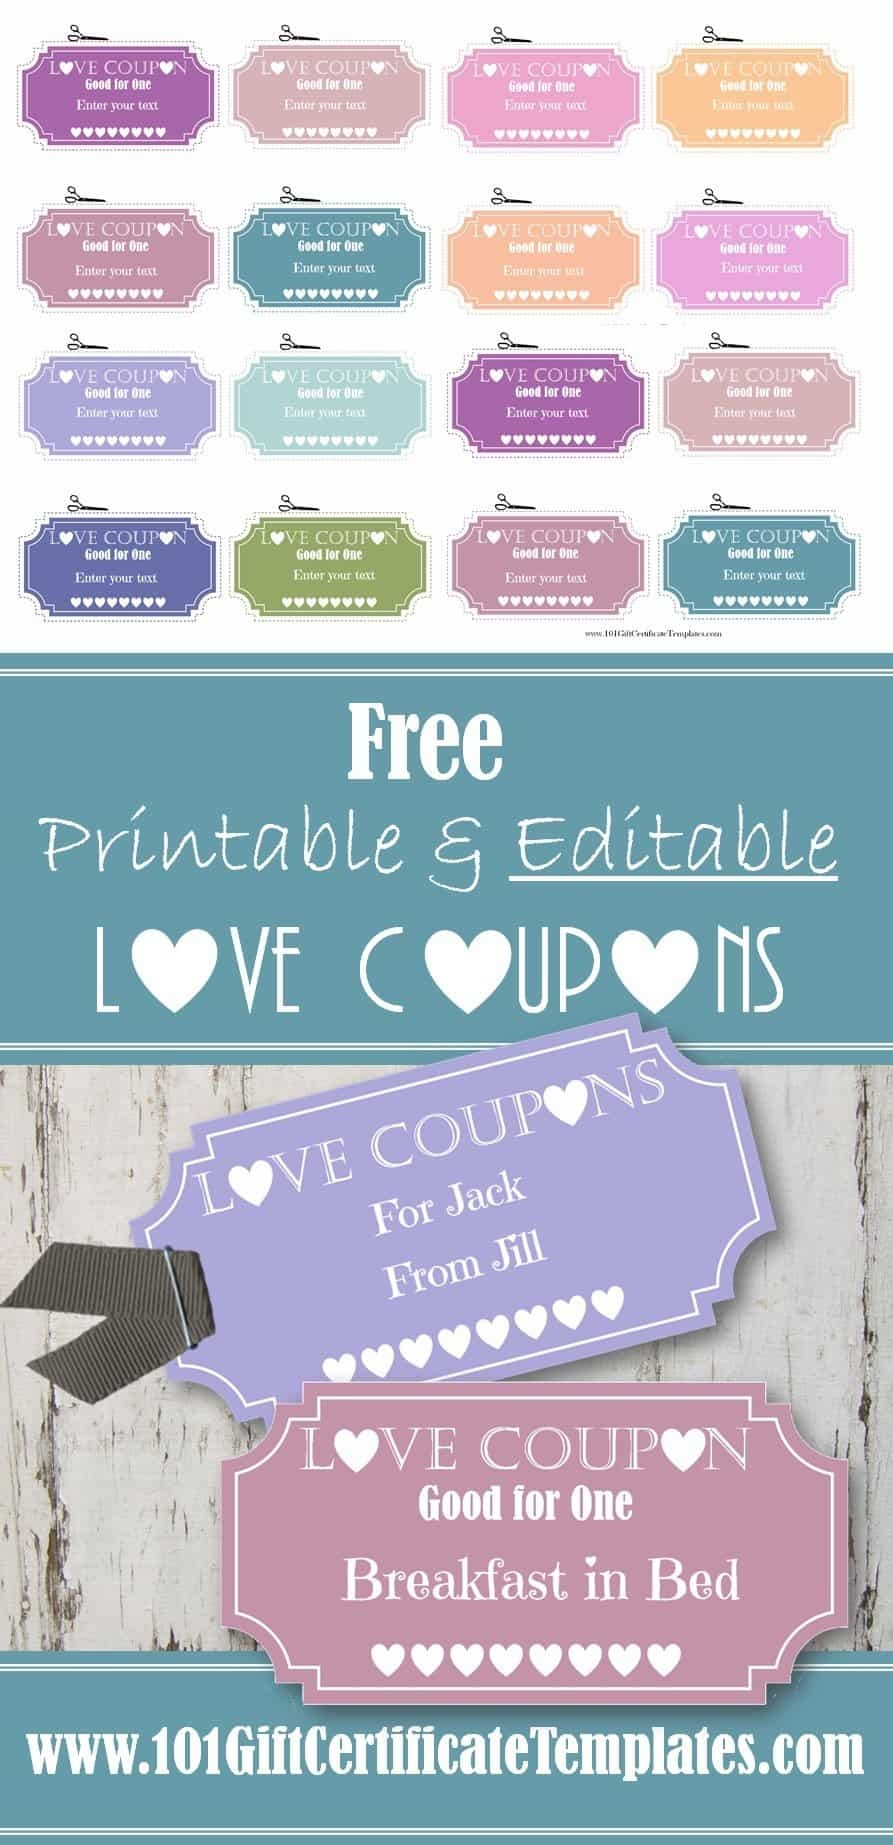 Free Editable Love Coupons For Him Or Her - Make Your Own Printable Coupons For Free